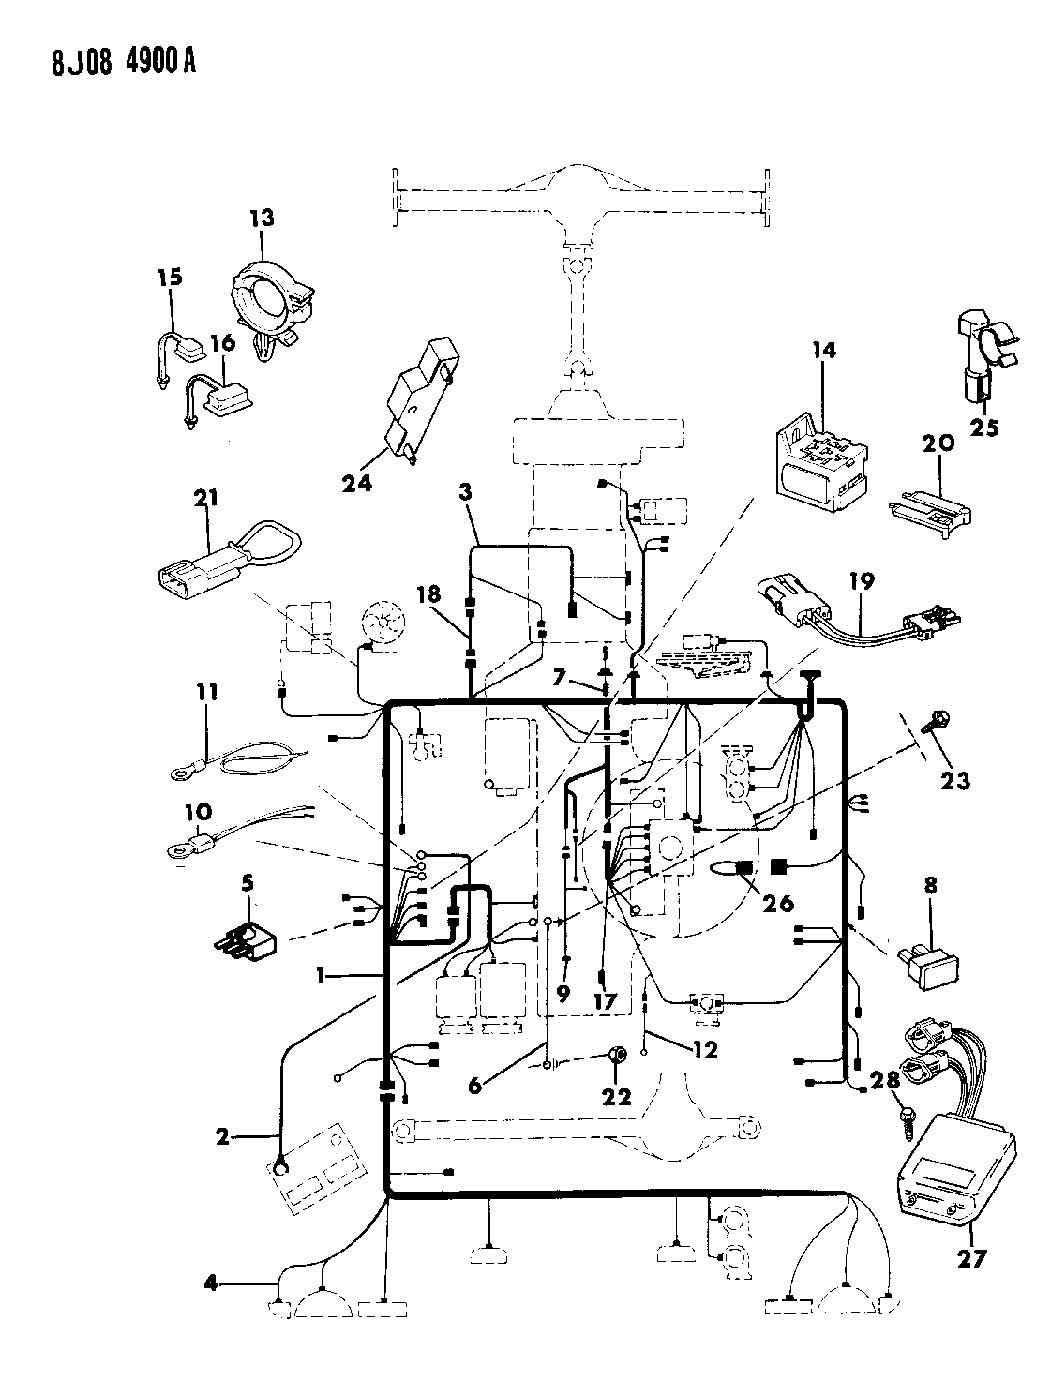 Jeep Comanche Parts Diagram Wire Data Schema Opamp Pulsewidth Modulator Circuit Tradeoficcom 1988 Interior